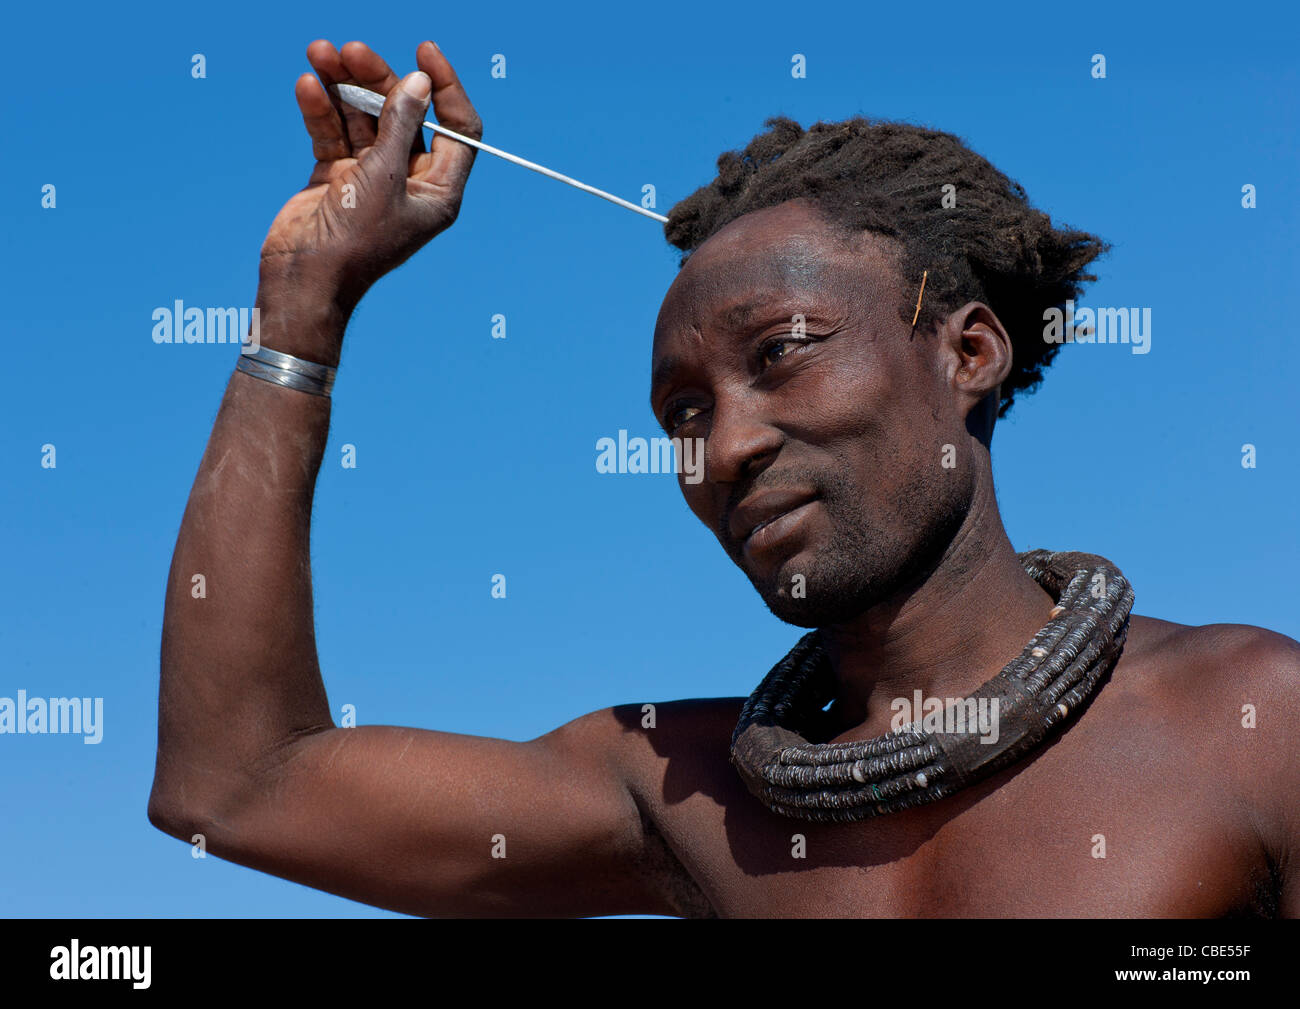 Himba Man With Traditional Hairstyle, Angola - Stock Image